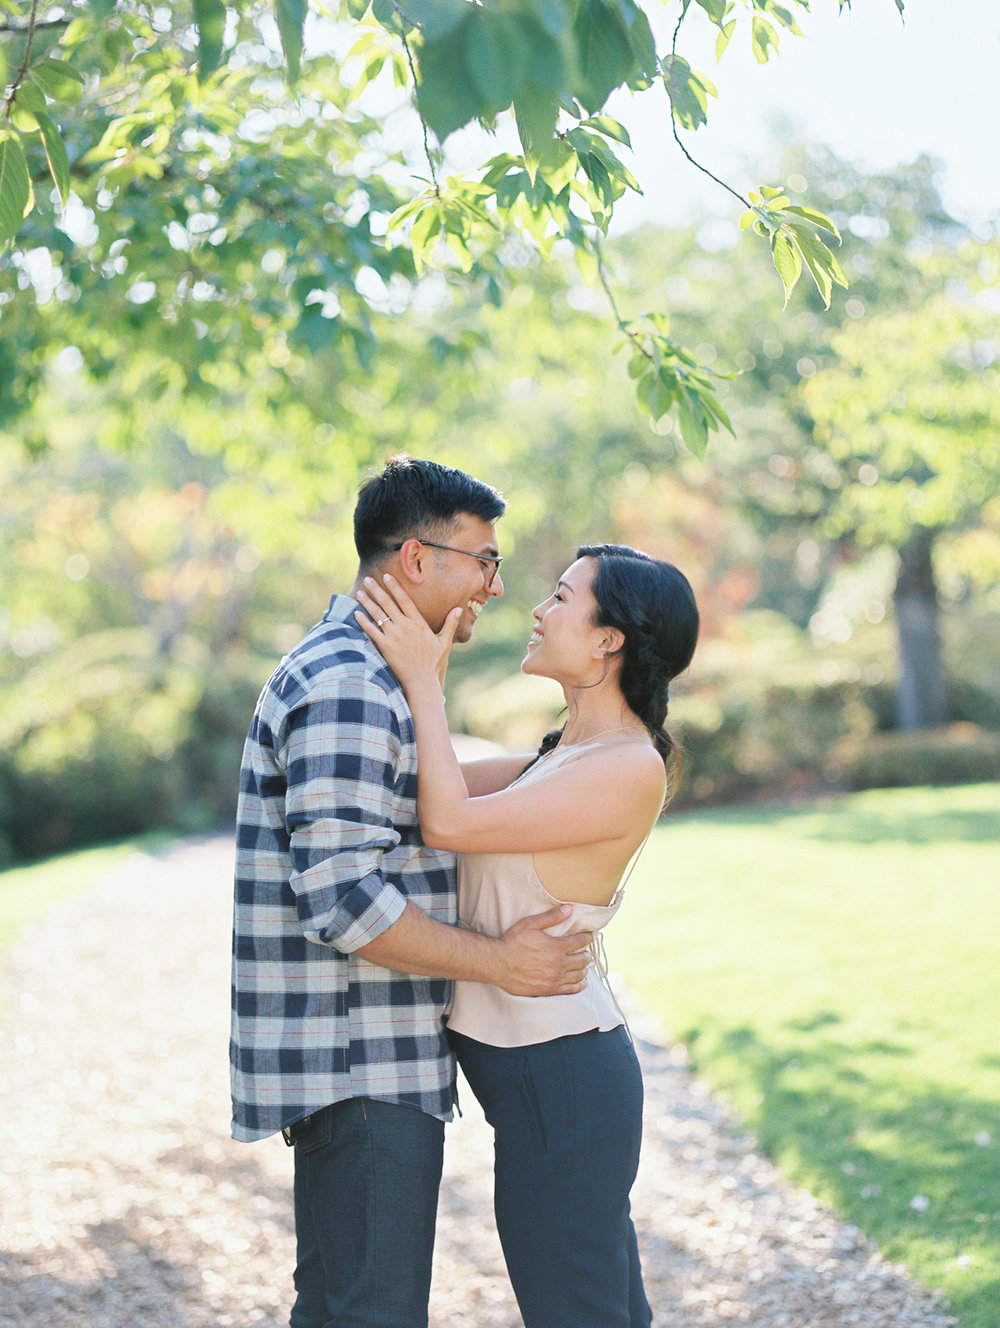 Portland Nike Campus Engagement Session Film Photographer Jenny Soi